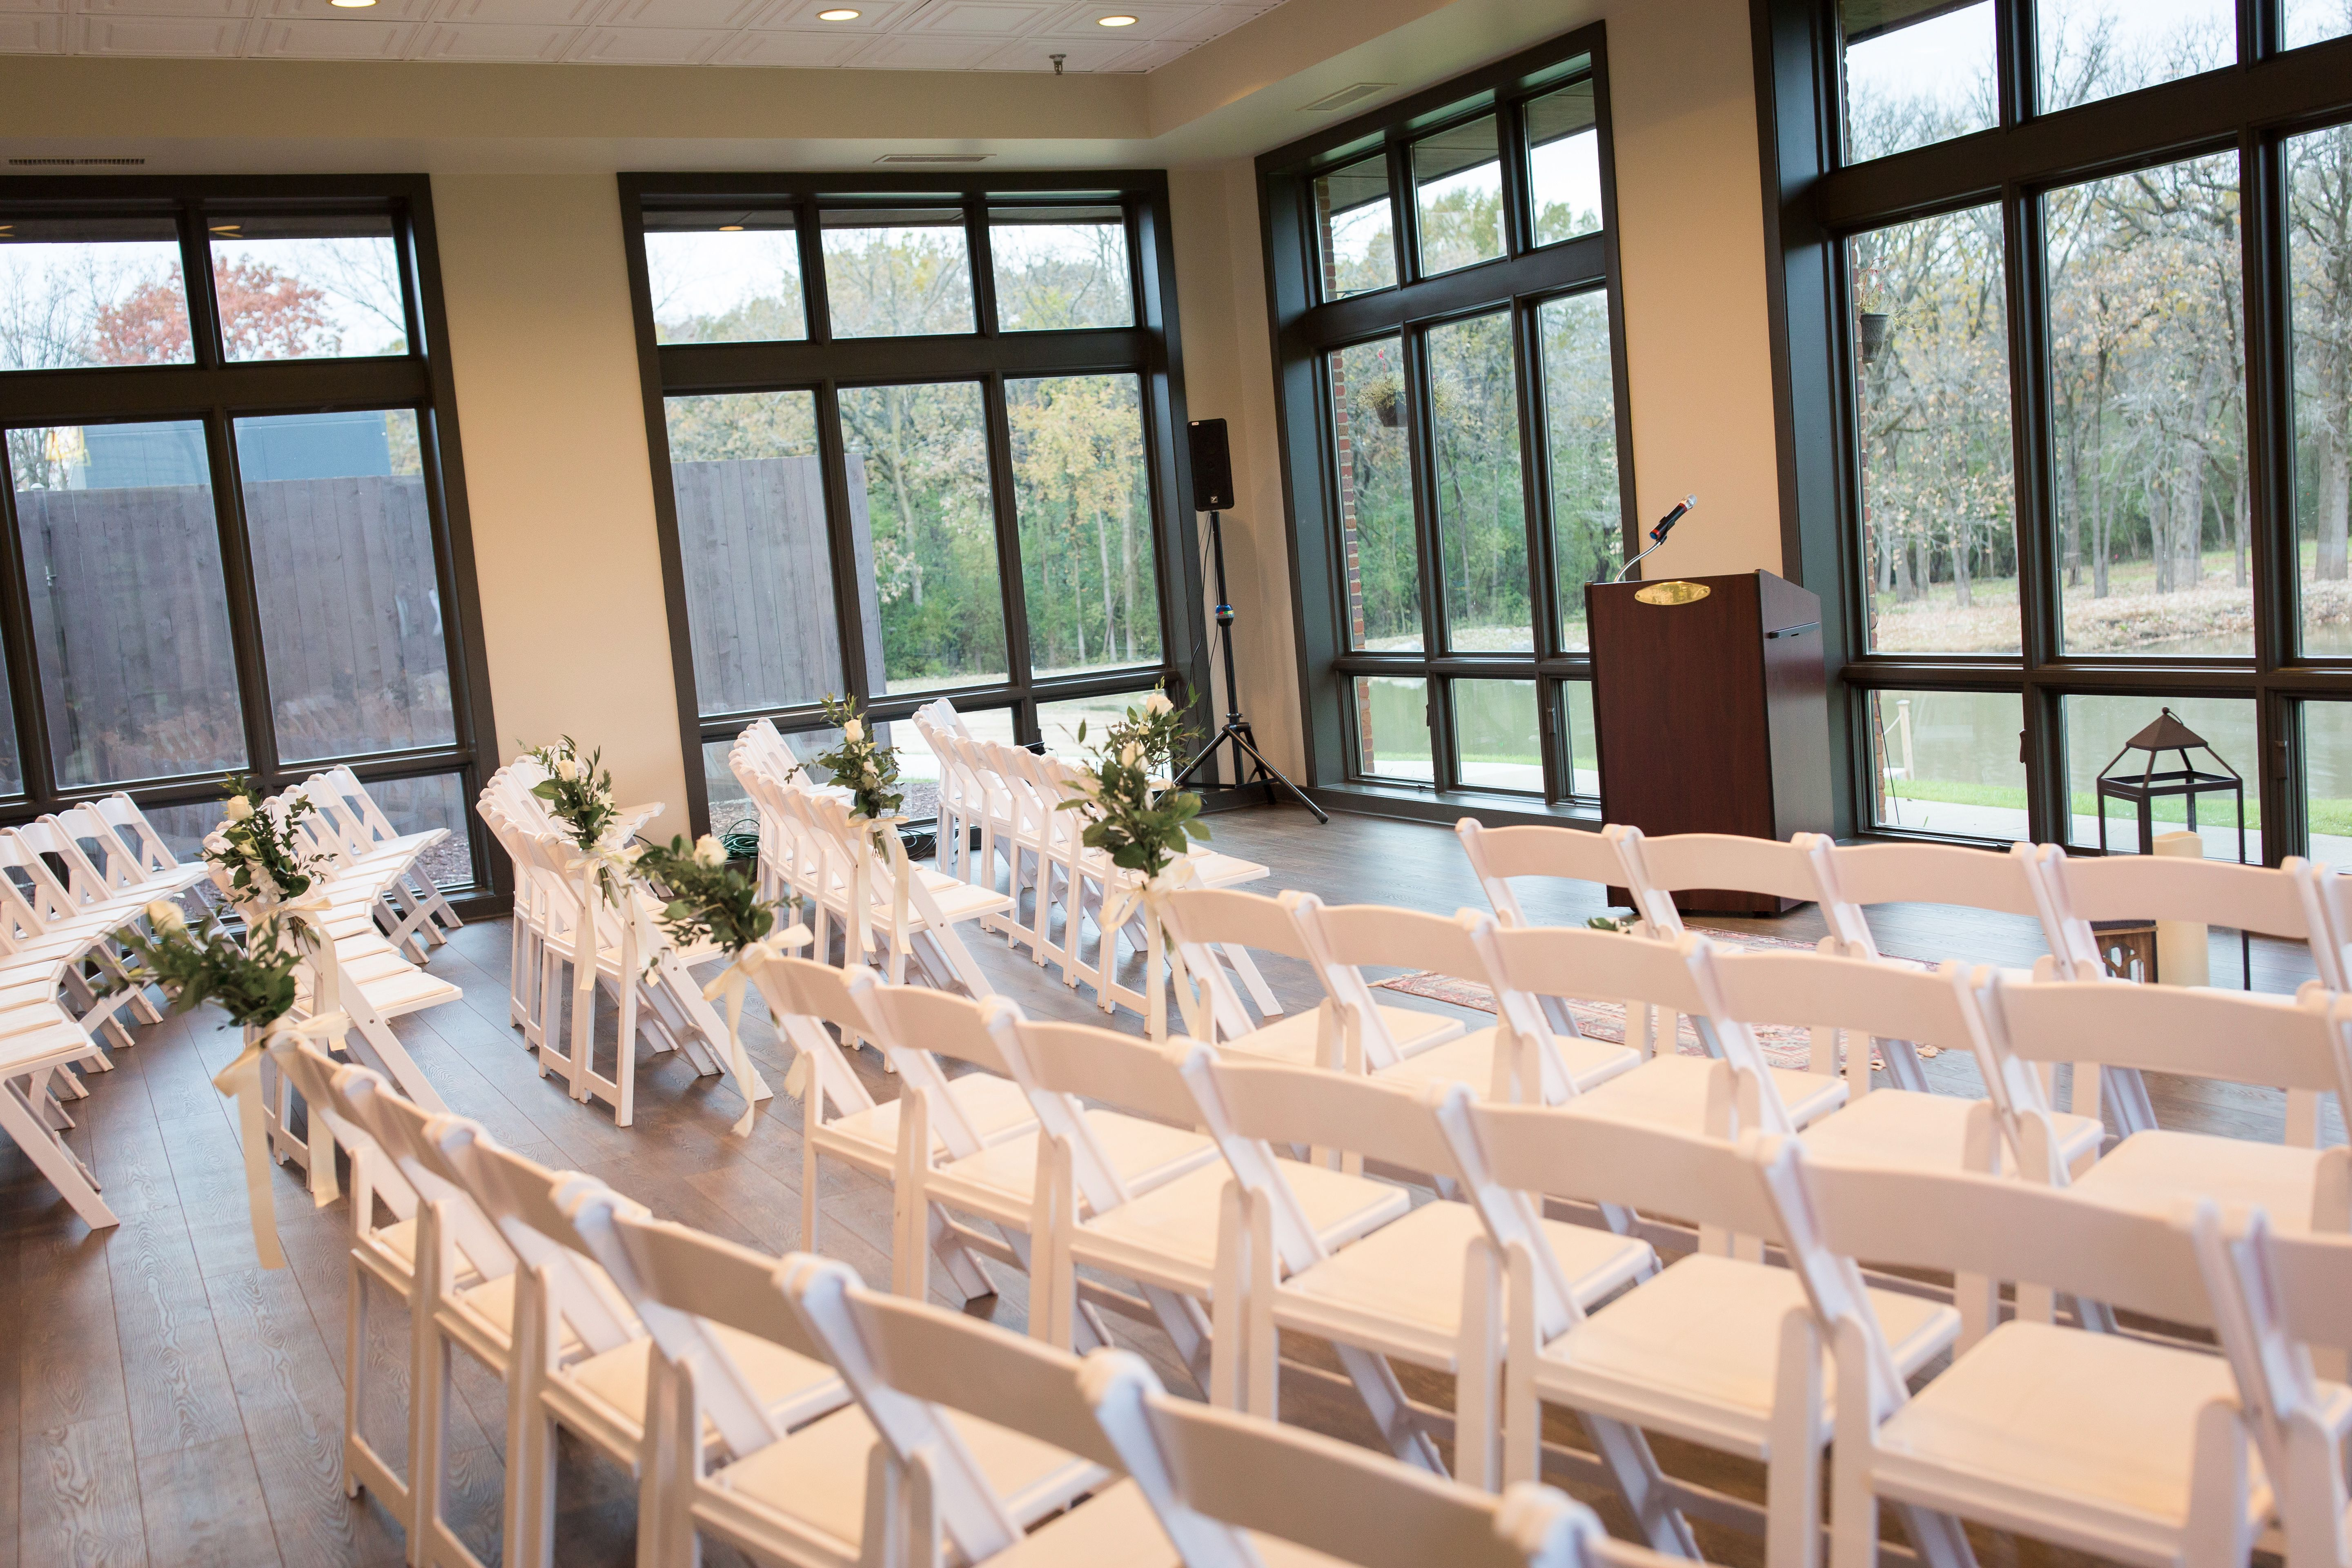 Beautiful, indoor setting for a wedding ceremony at the